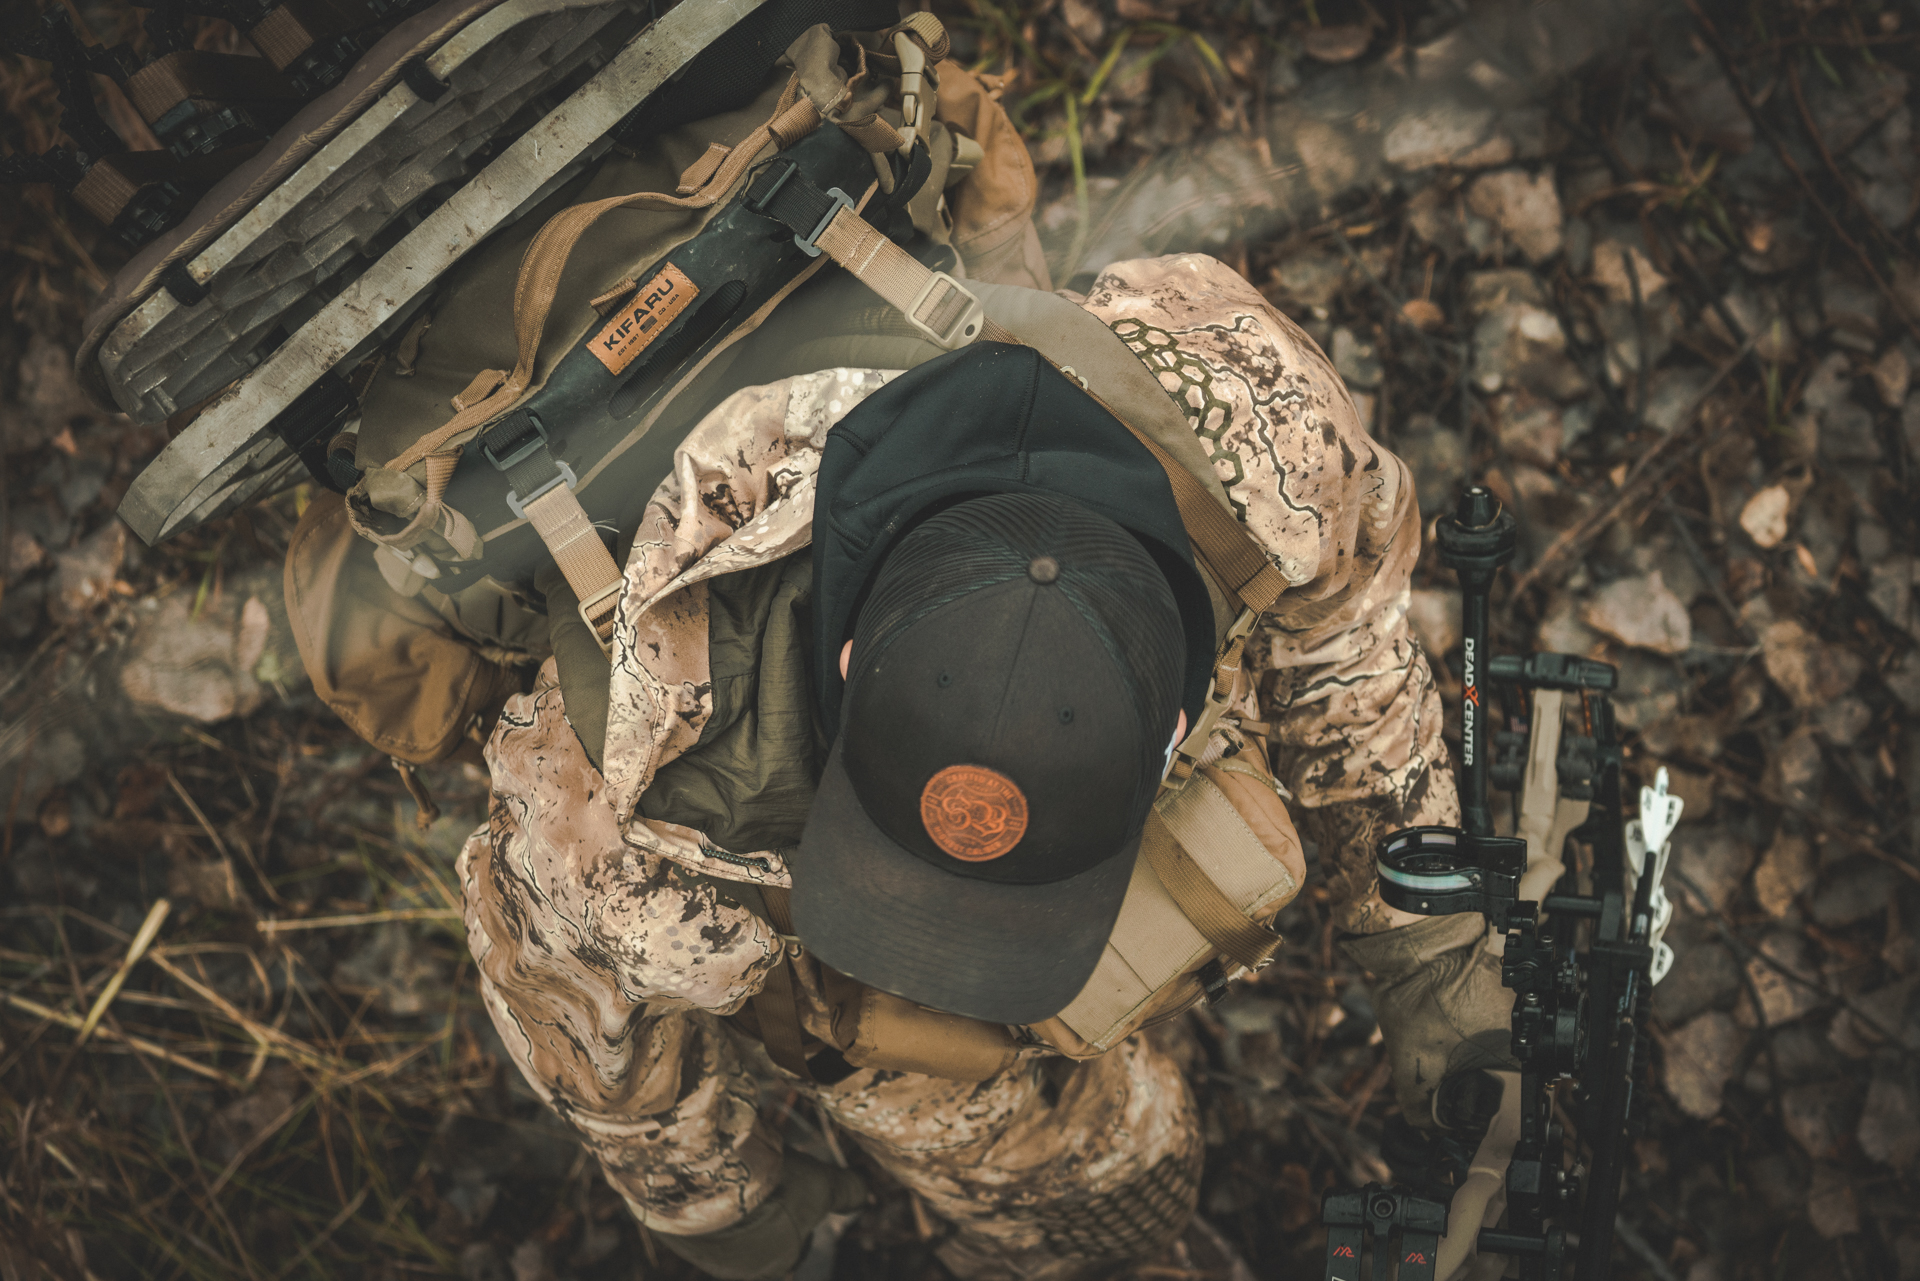 Here's an angle we don't see everyday. I got up above this whitetail hunter and shot down while looking for a spot to place his stand. Variety goes a long way in photography.